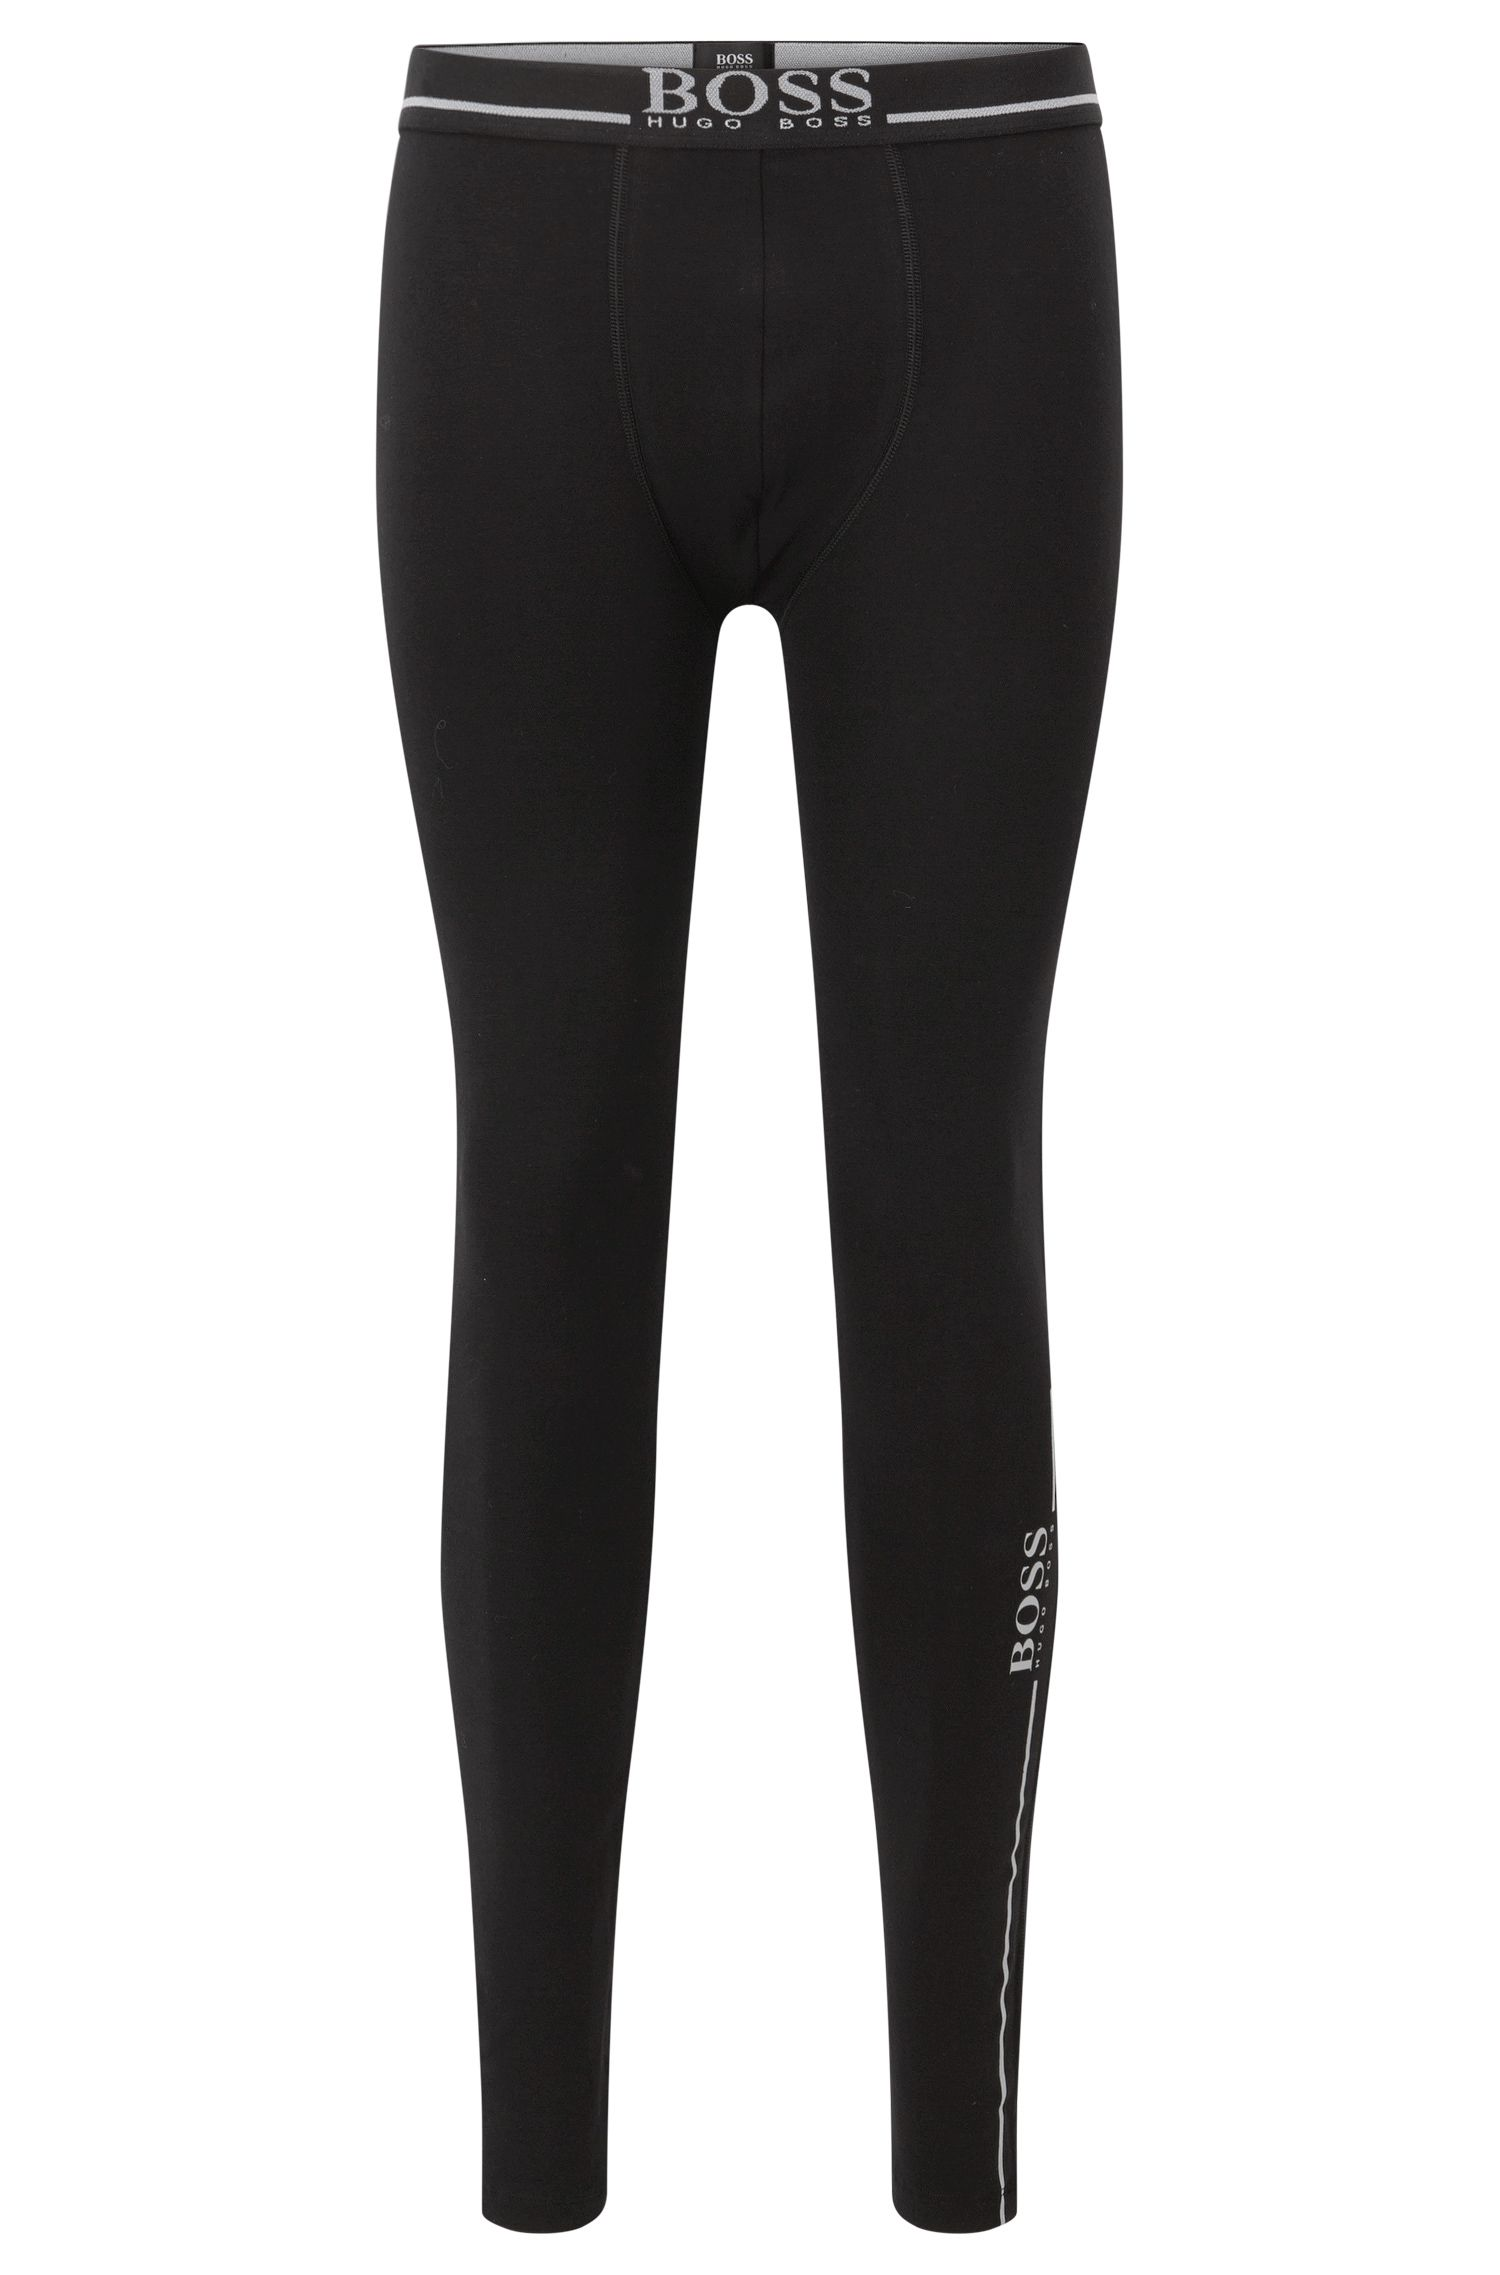 Stretch cotton jersey long johns with logo details